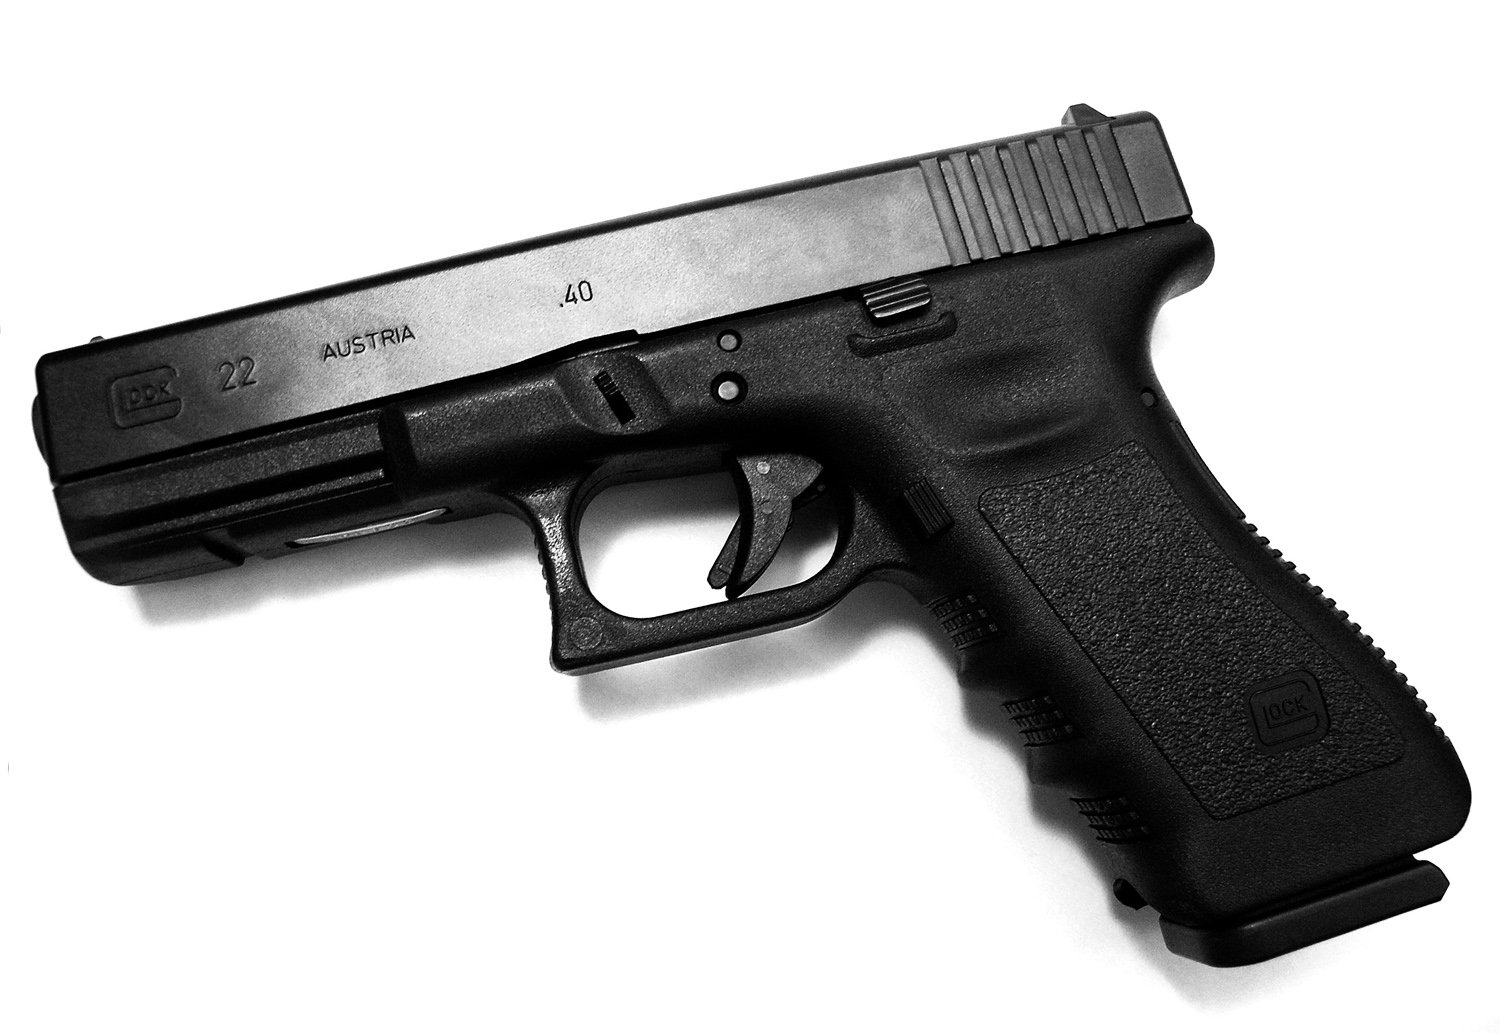 Glock 22 .40SW Wallpaper and Background